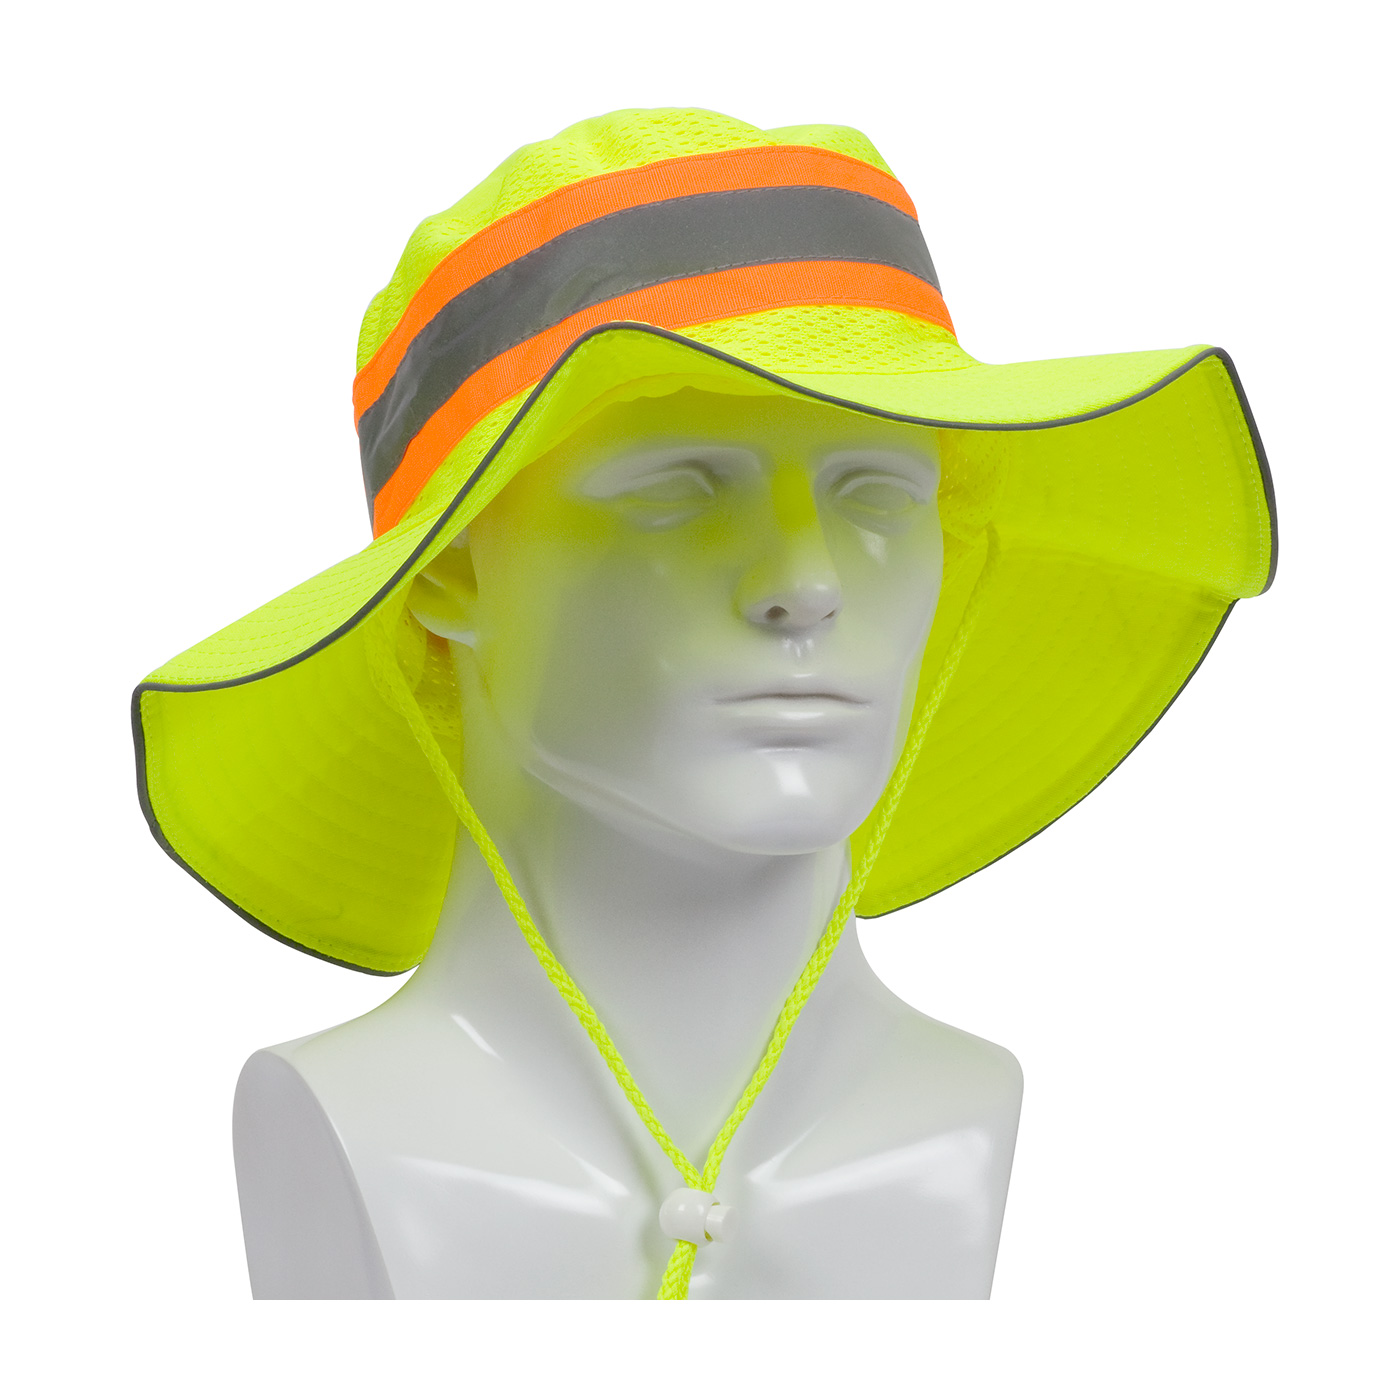 PIP cooling ranger style hat